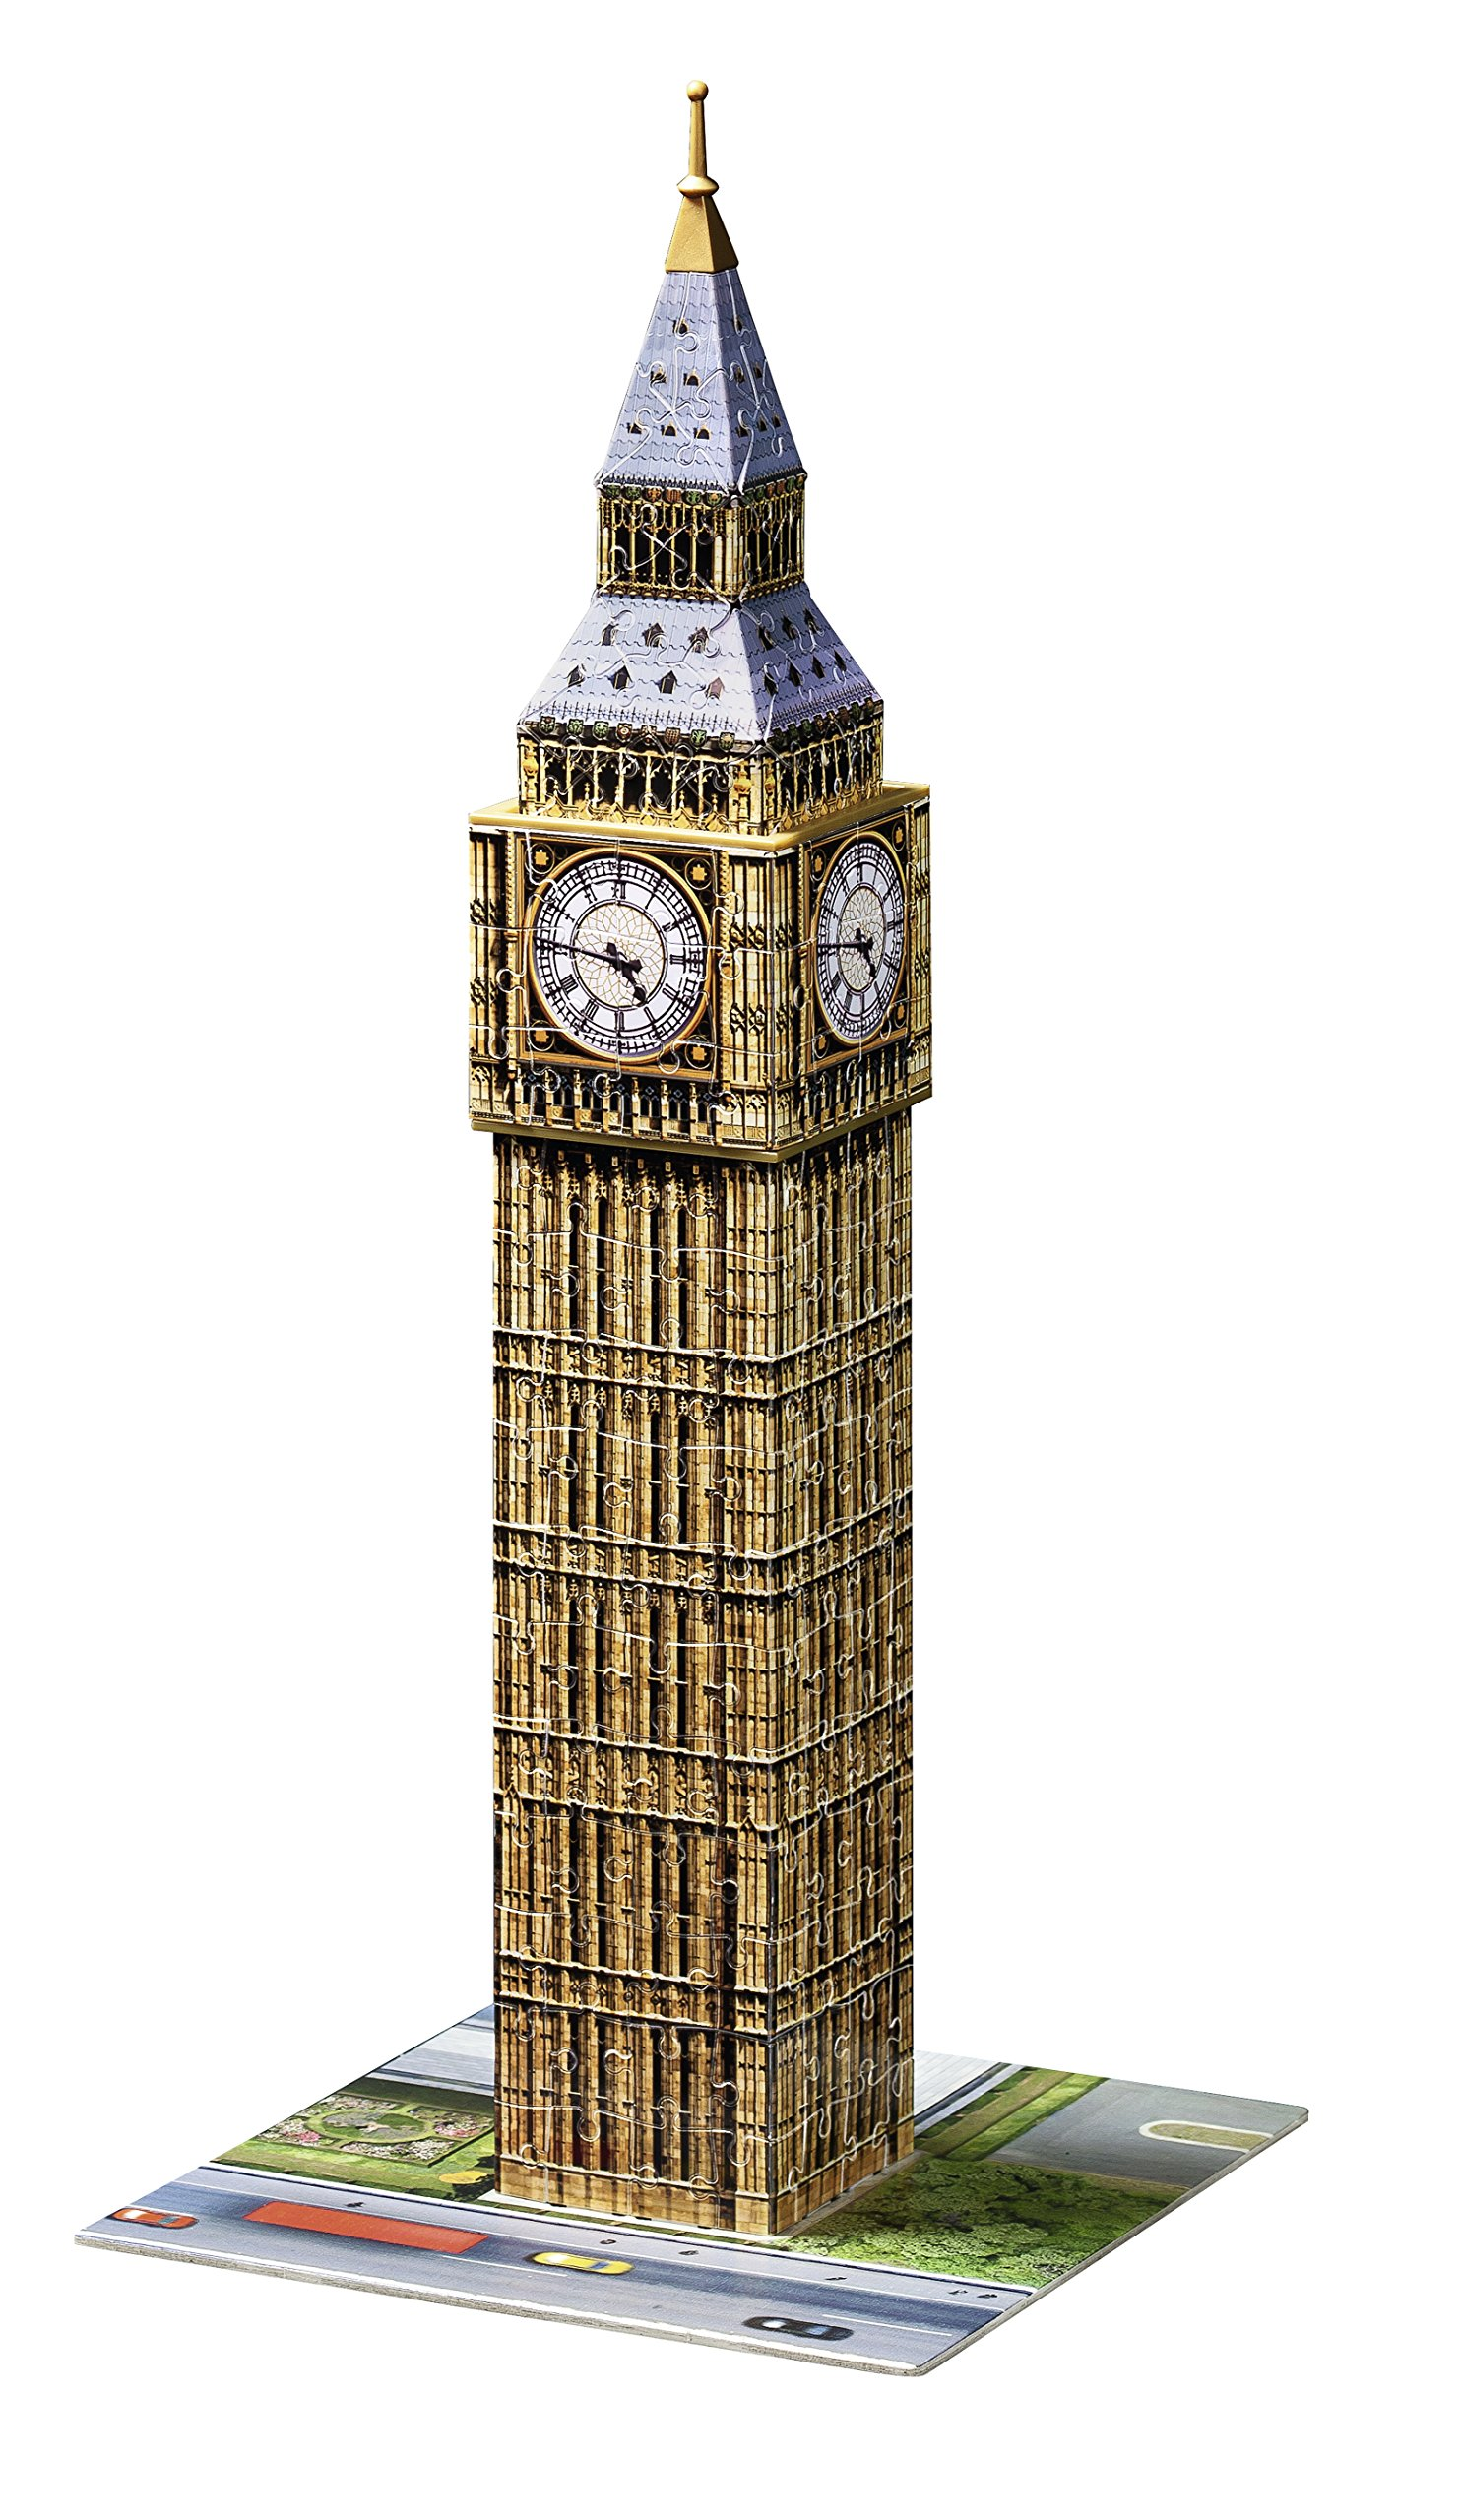 Ravensburger Big Ben 216 Piece 3D Jigsaw Puzzle for Kids and Adults - Easy Click Technology Means Pieces Fit Together Perfectly